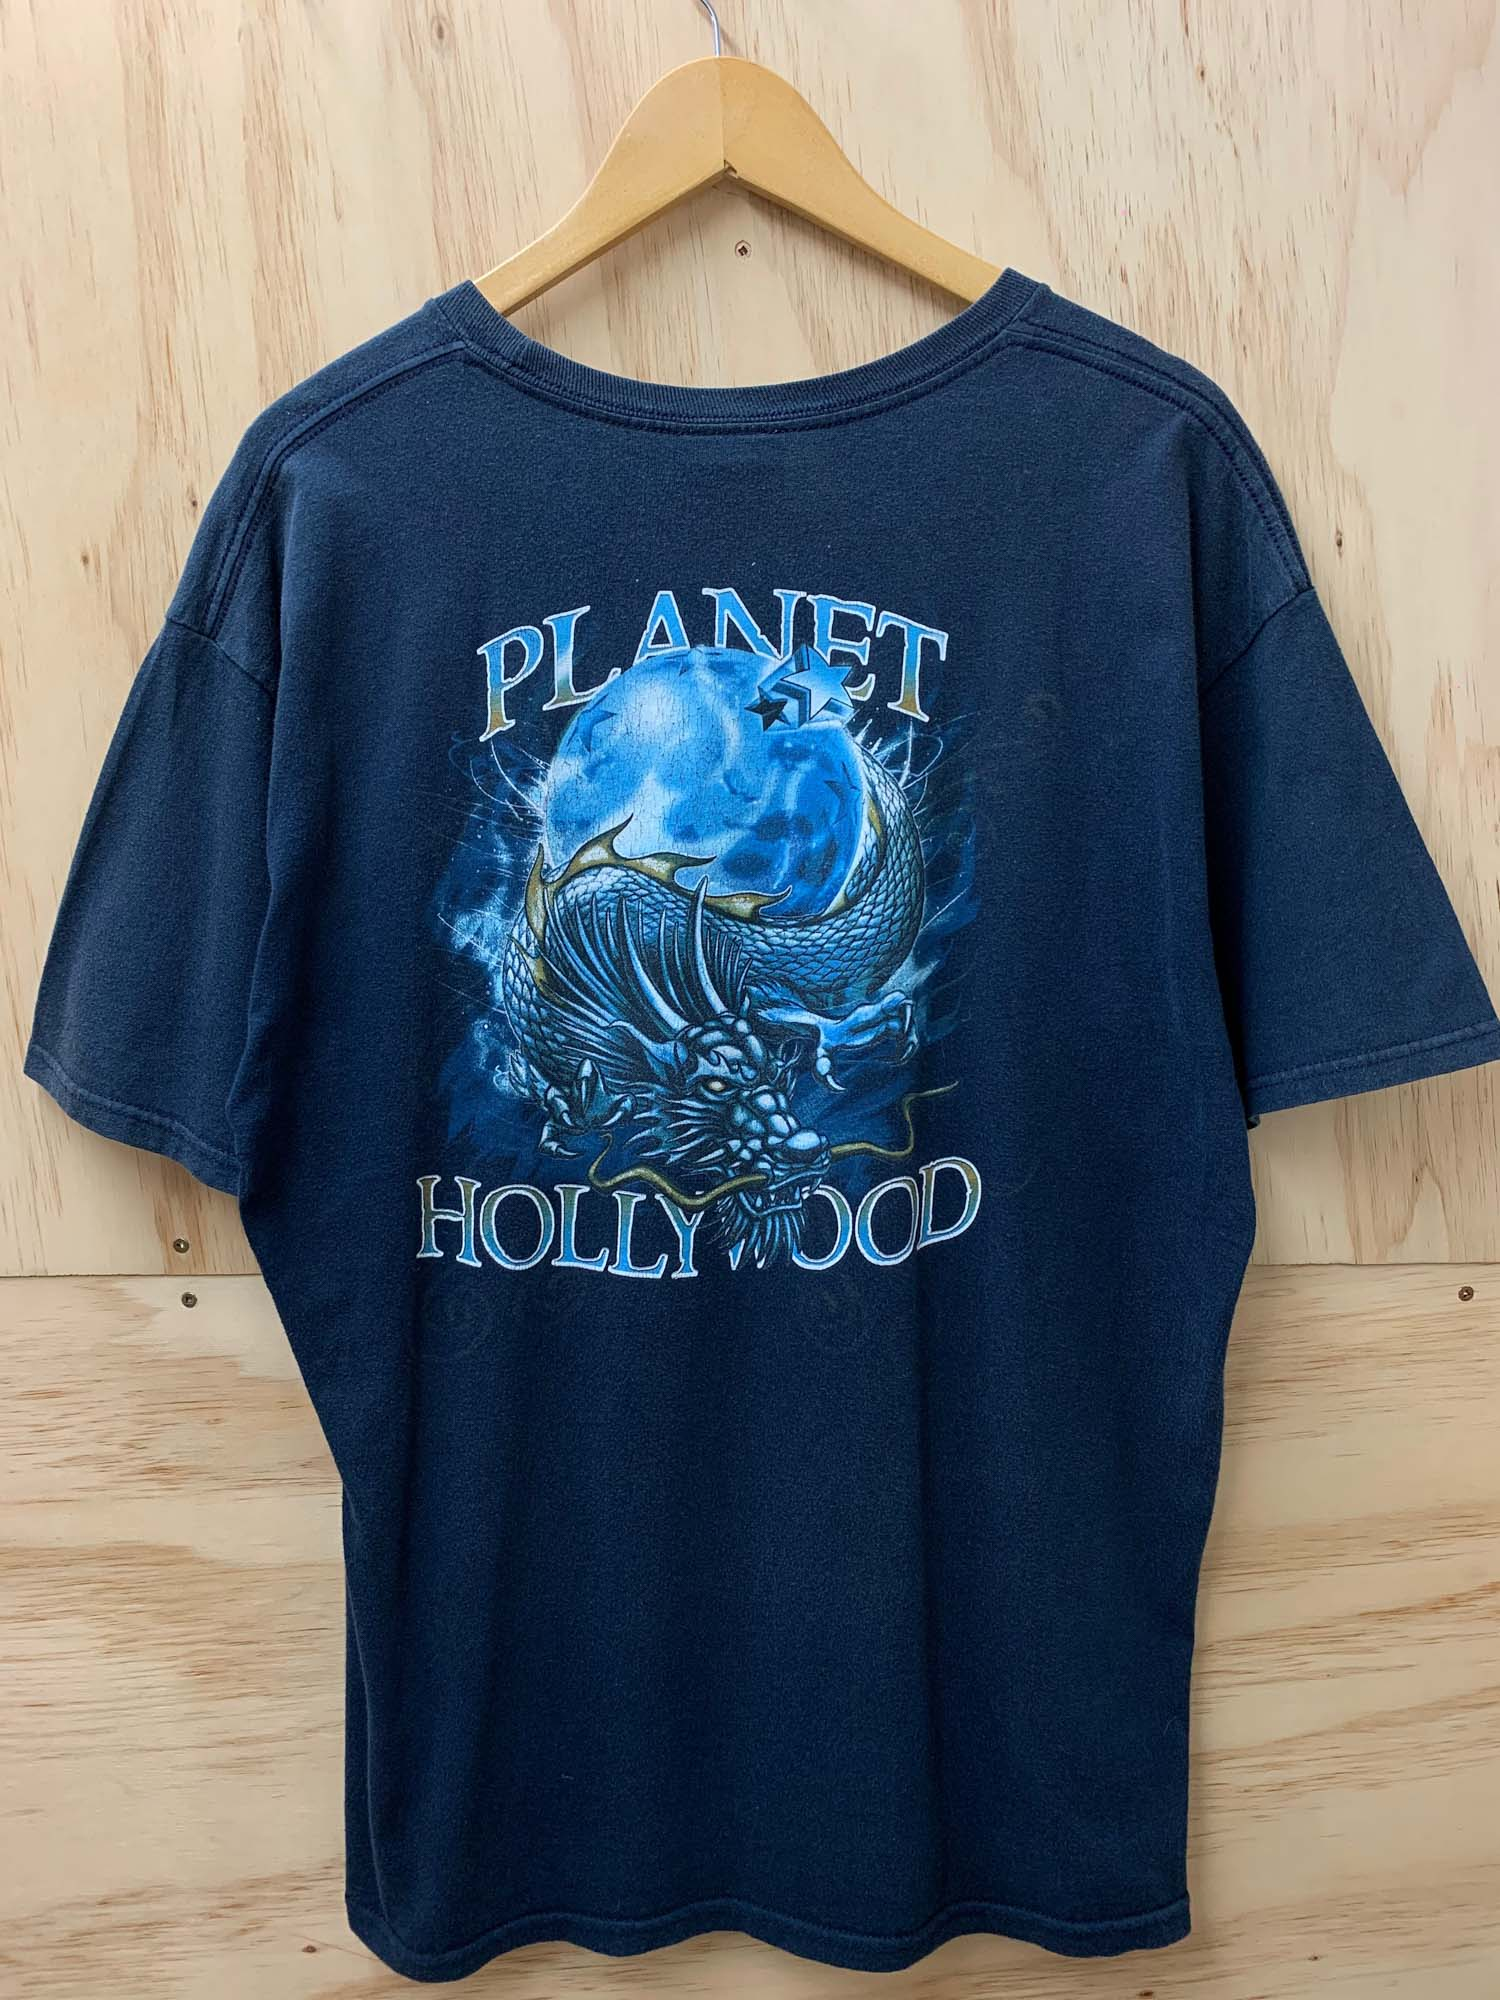 VINTAGE PLANET HOLLYWOOD ORLANDO TEE